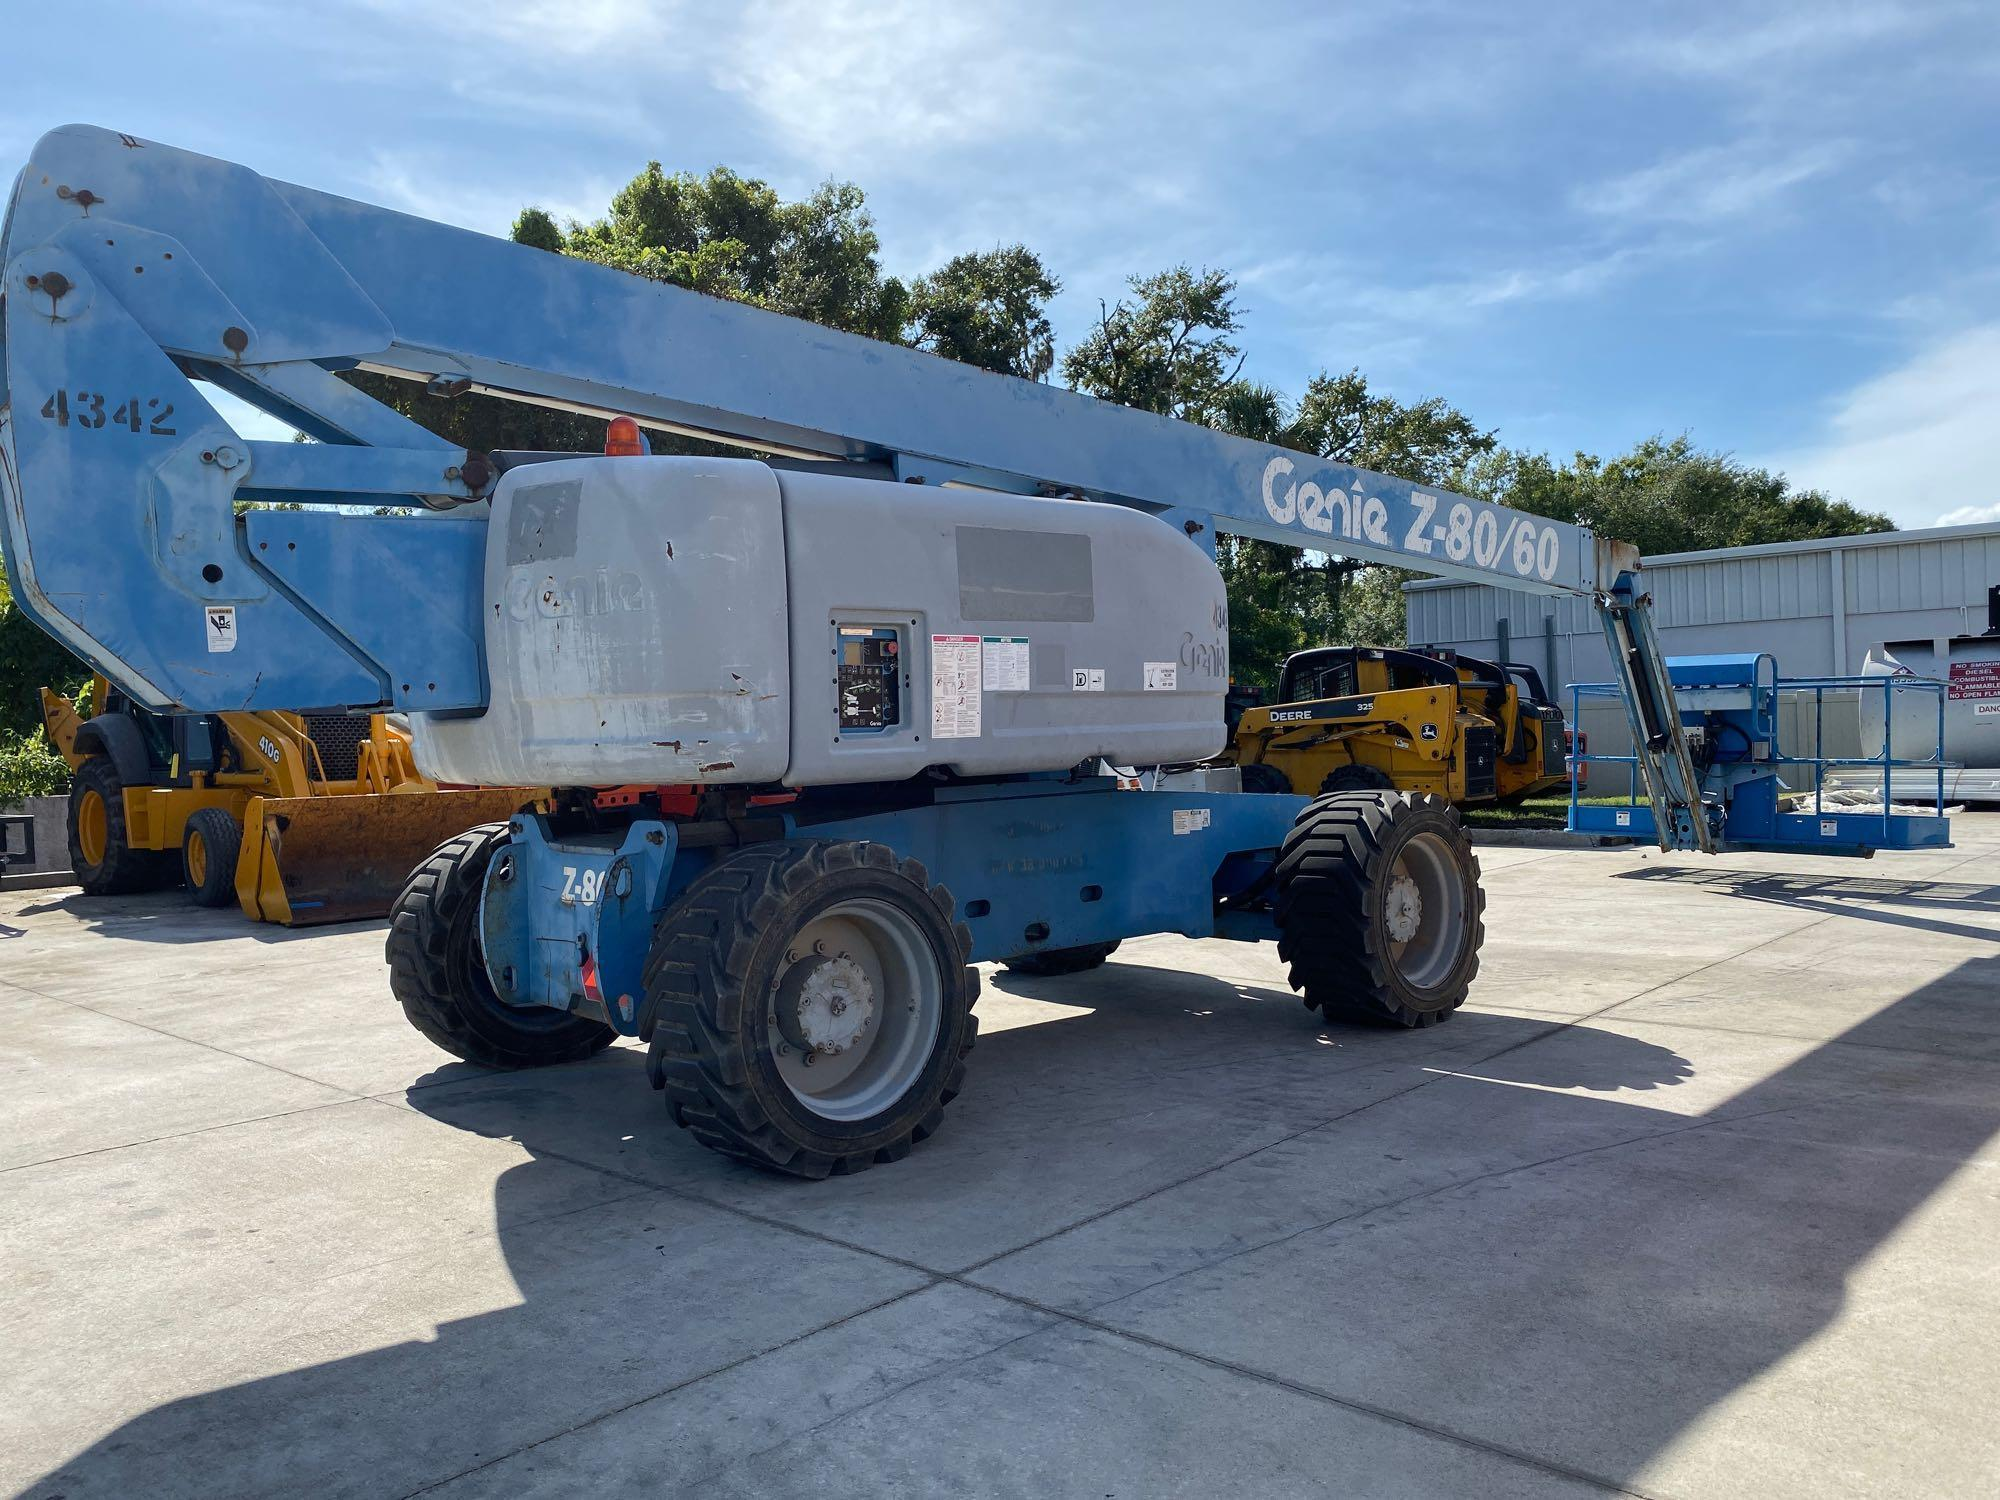 Lot 11 - GENIE Z80/60 DIESEL POWERED ARTICULATING BOOM LIFT, 4X4 RUNS AND OPERATES